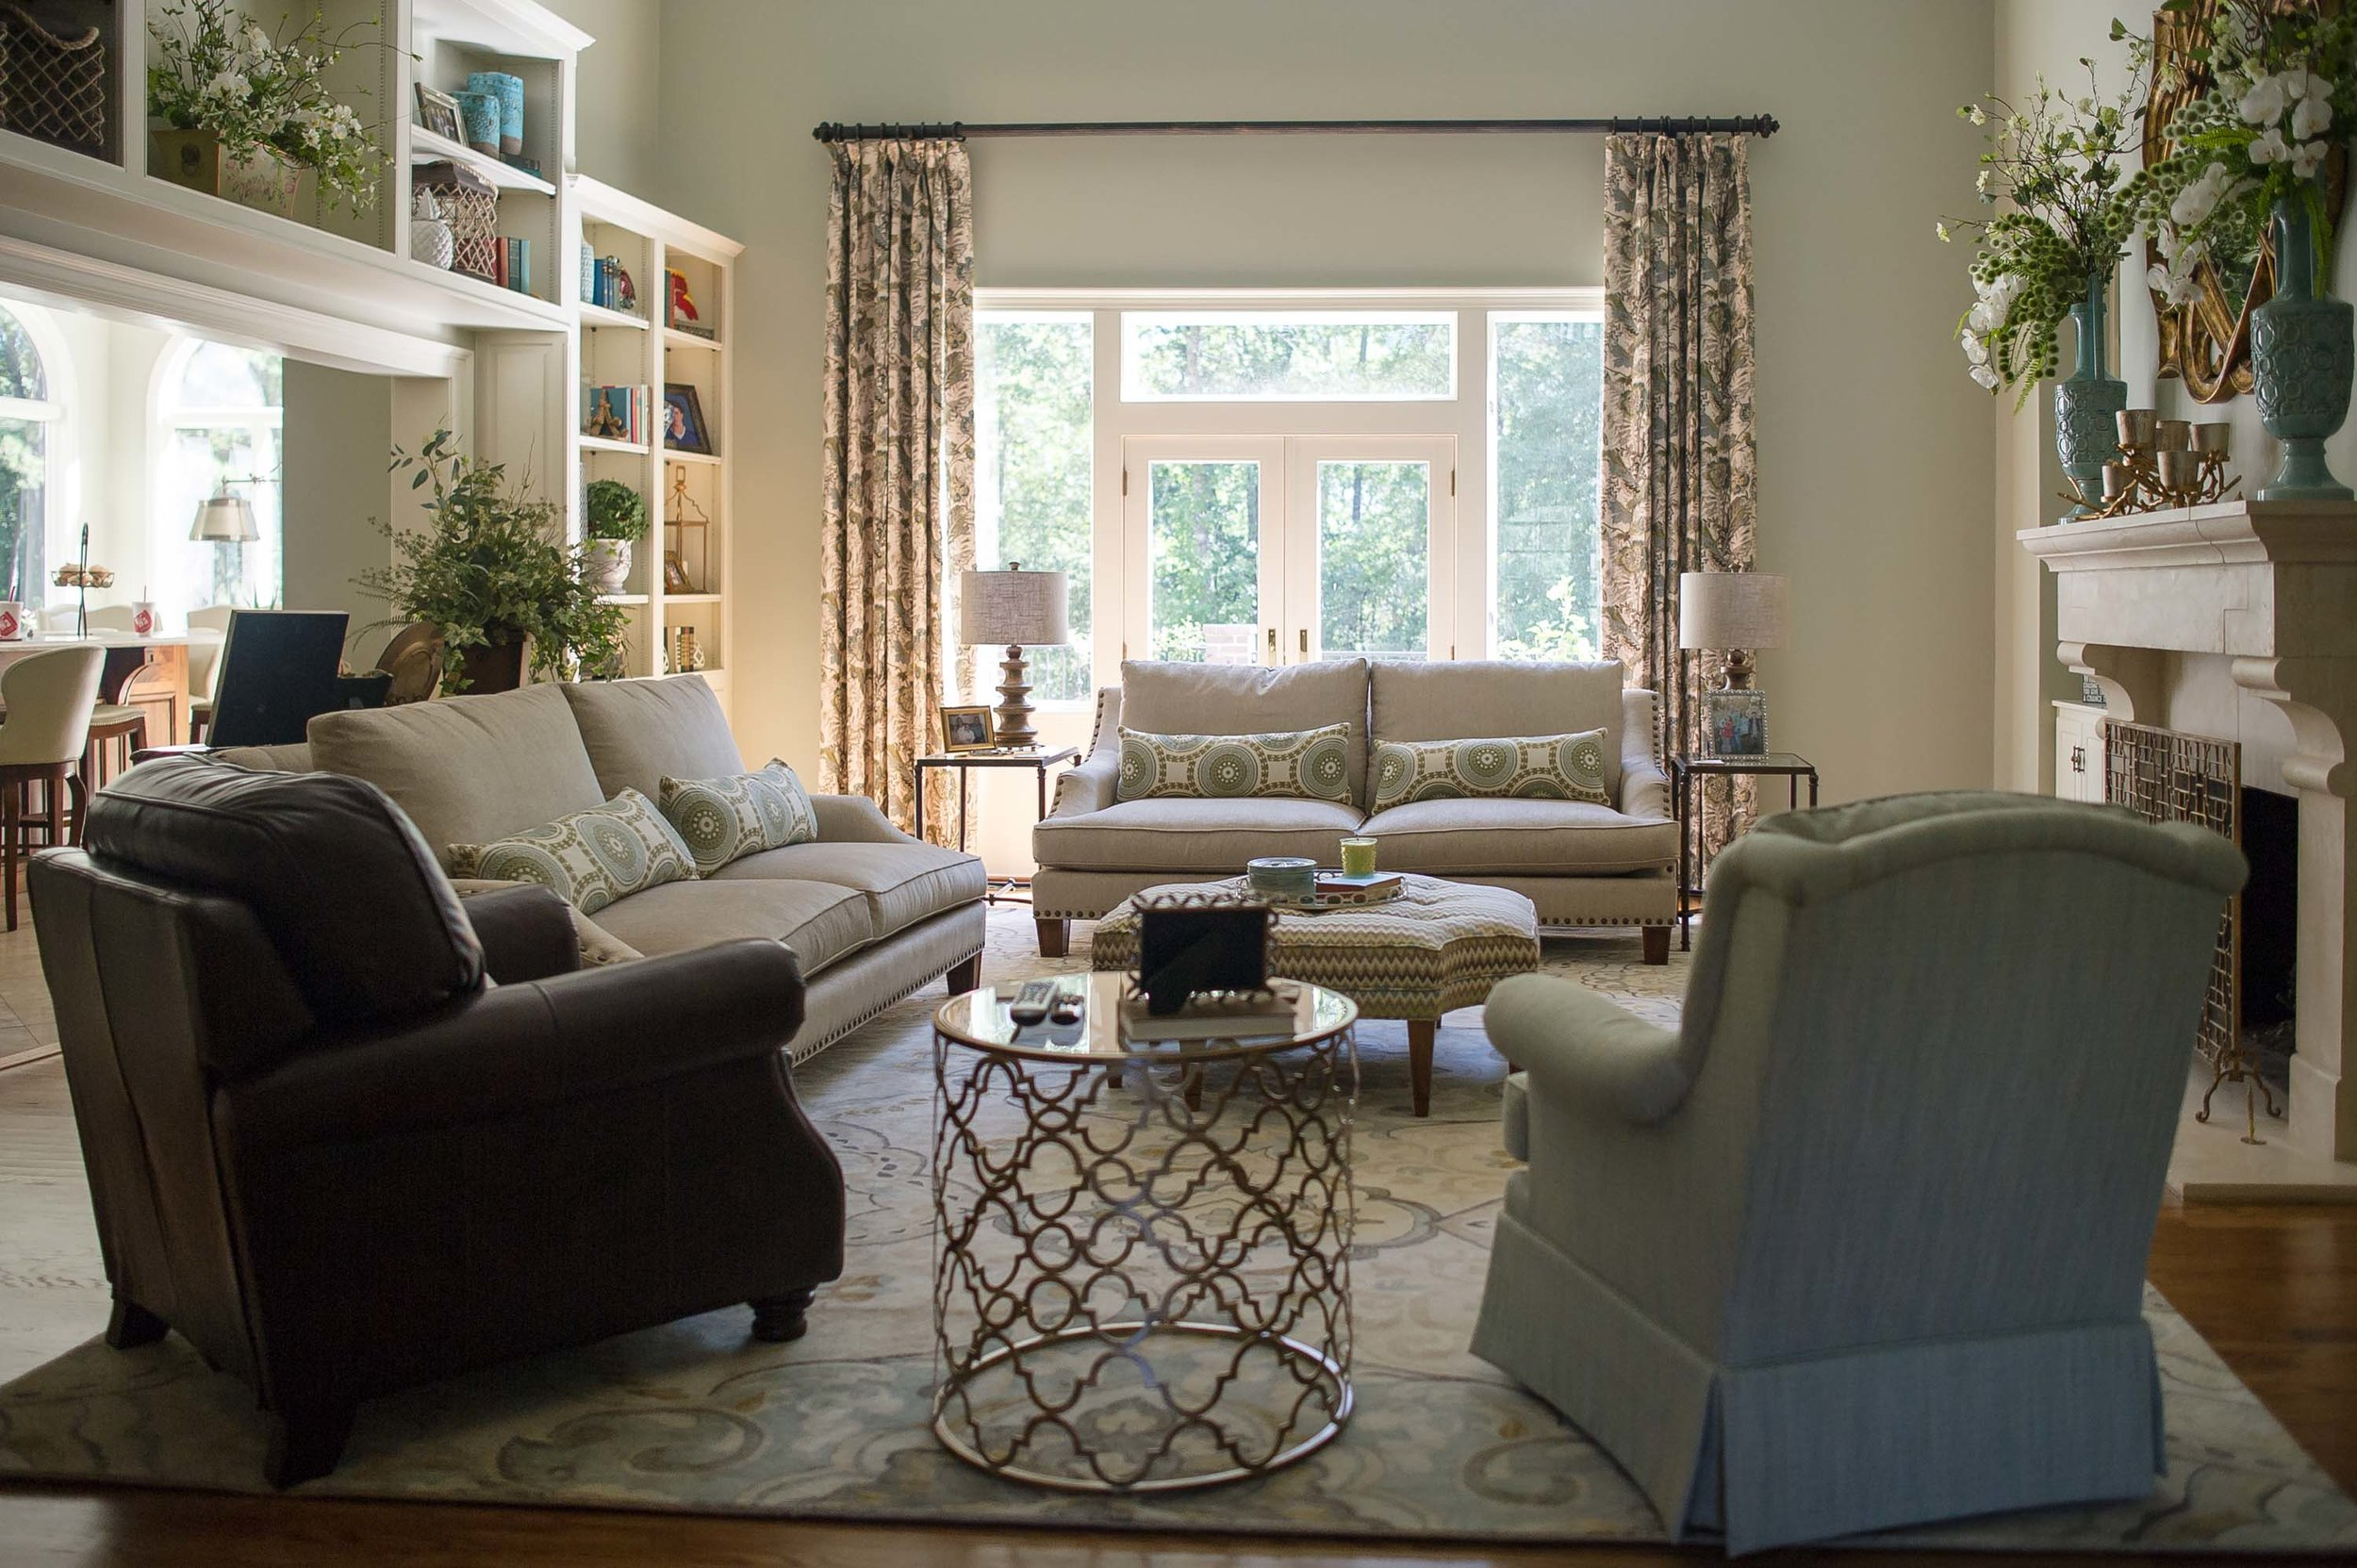 Living room with fireplace, sofa set and indoor plants